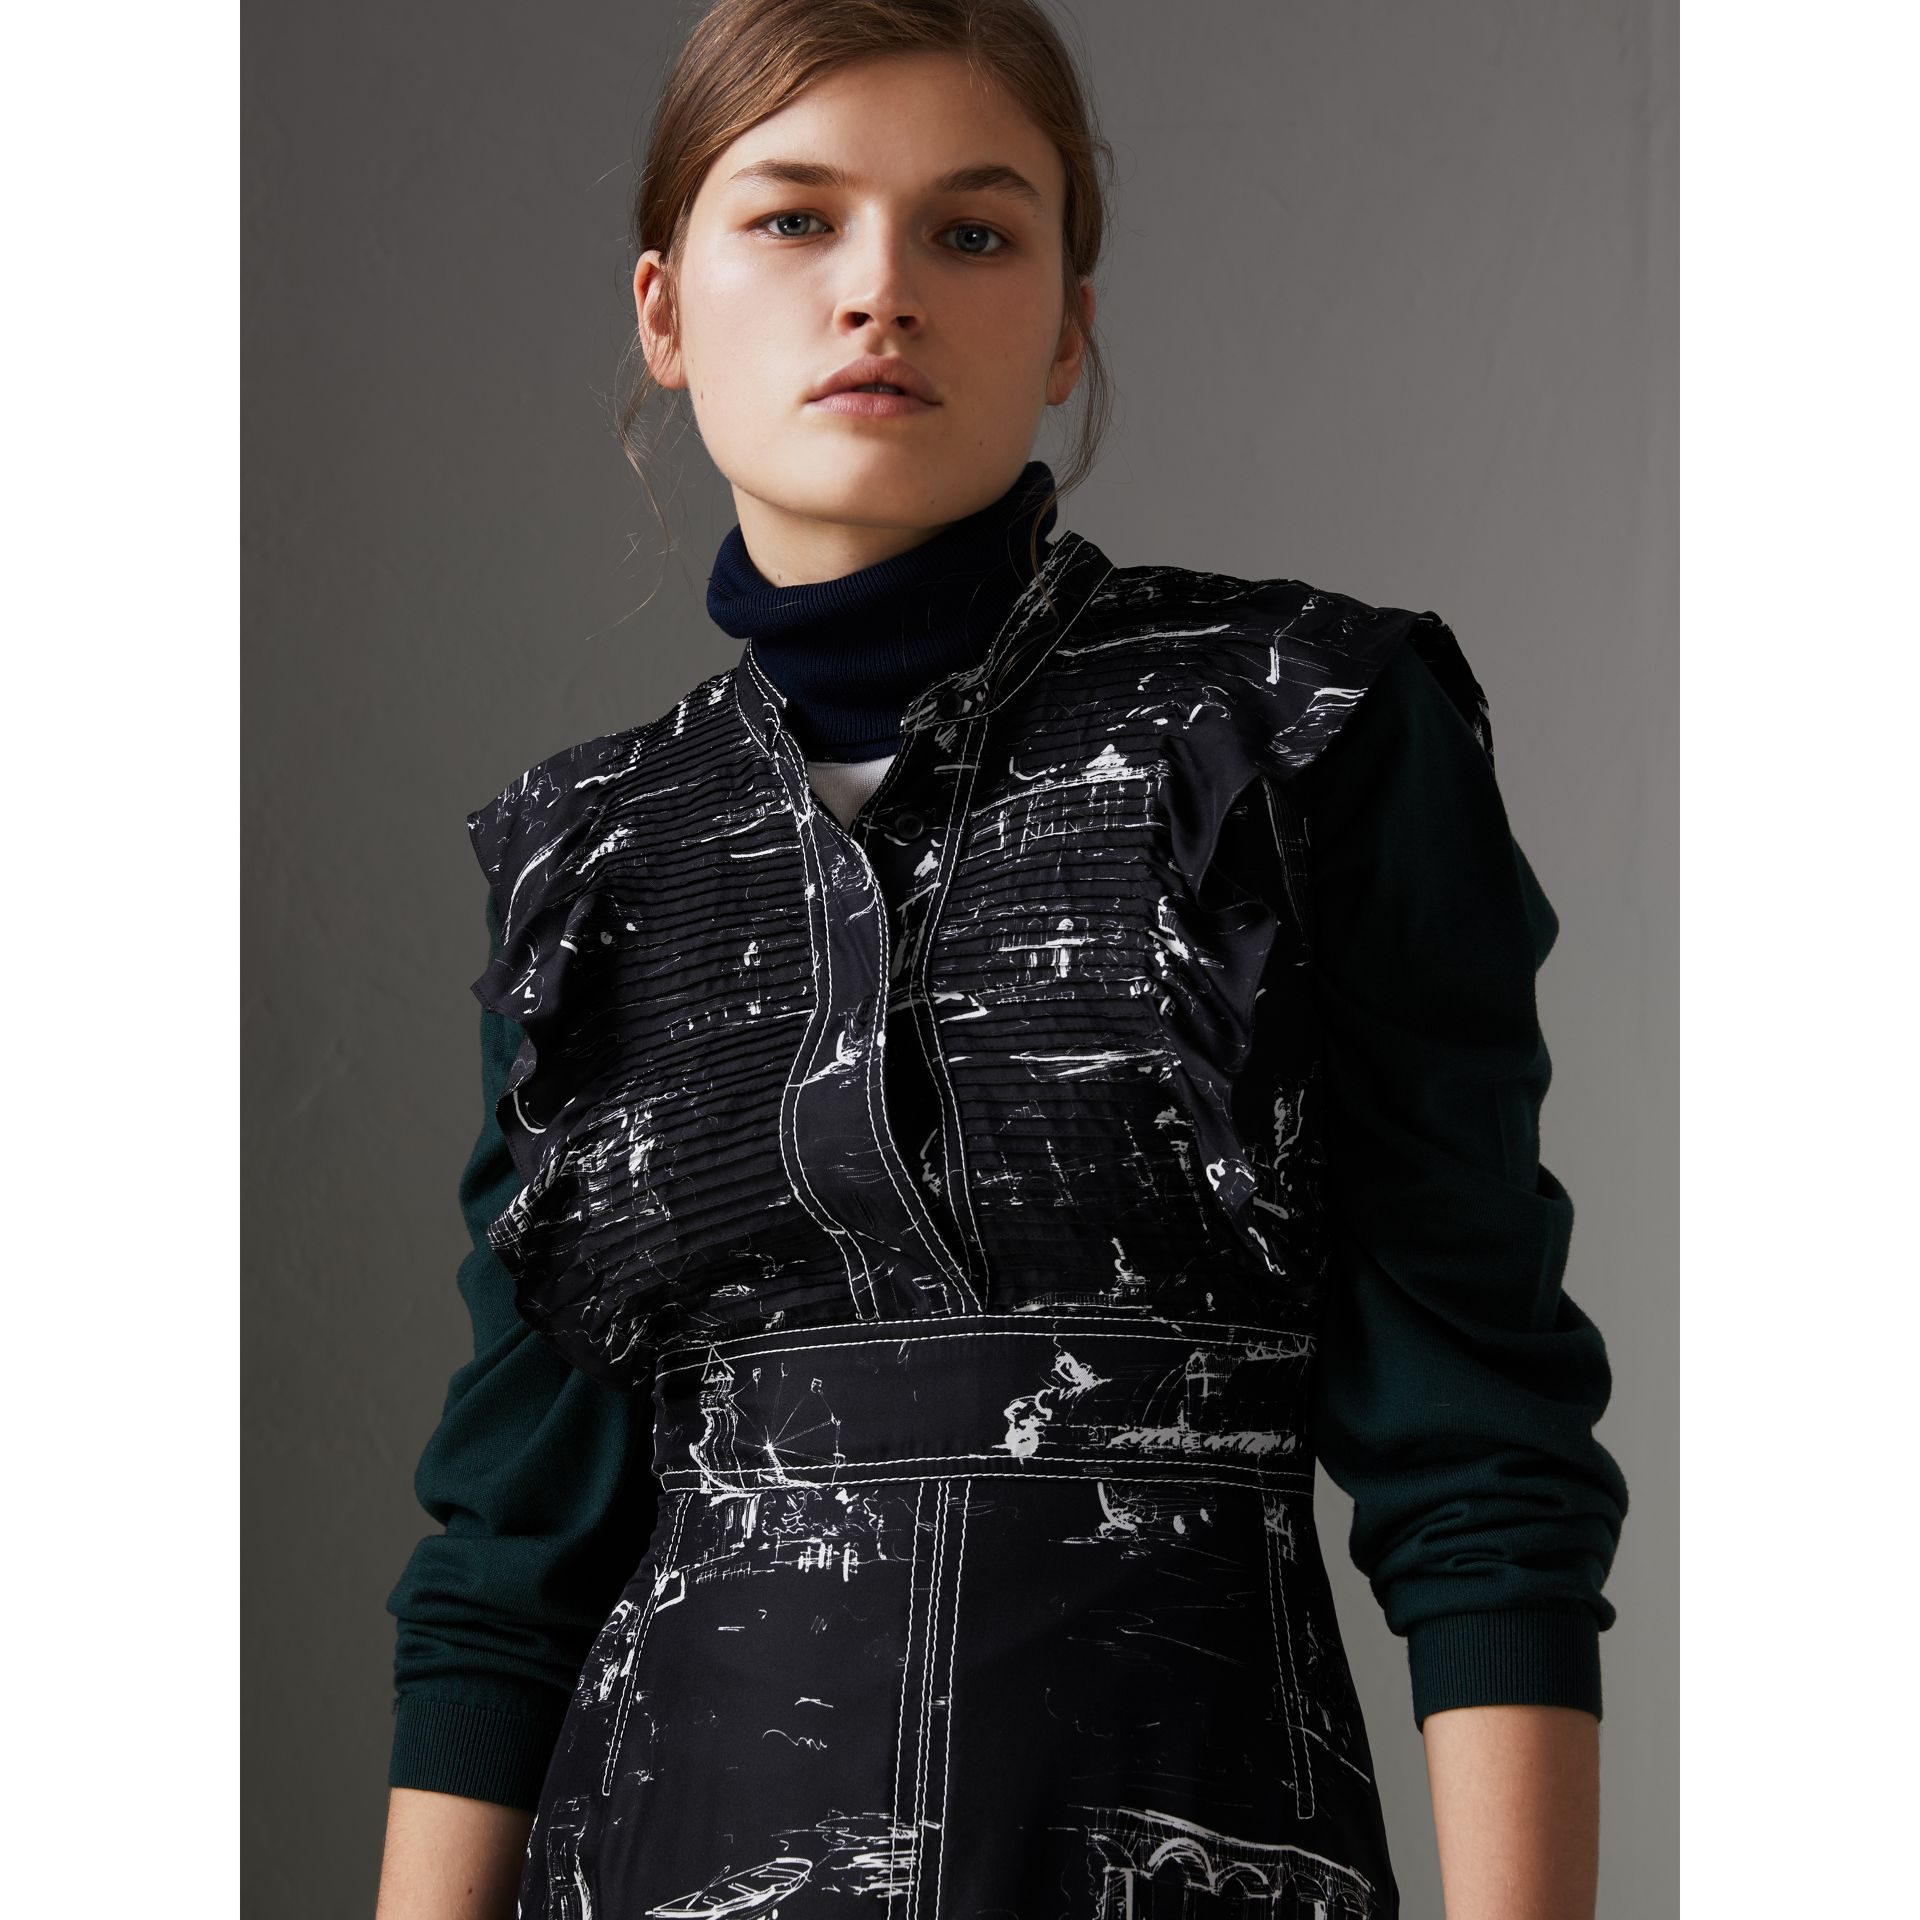 Ruffle Detail Landmark Print Silk Dress in Black - Women | Burberry United Kingdom - gallery image 1